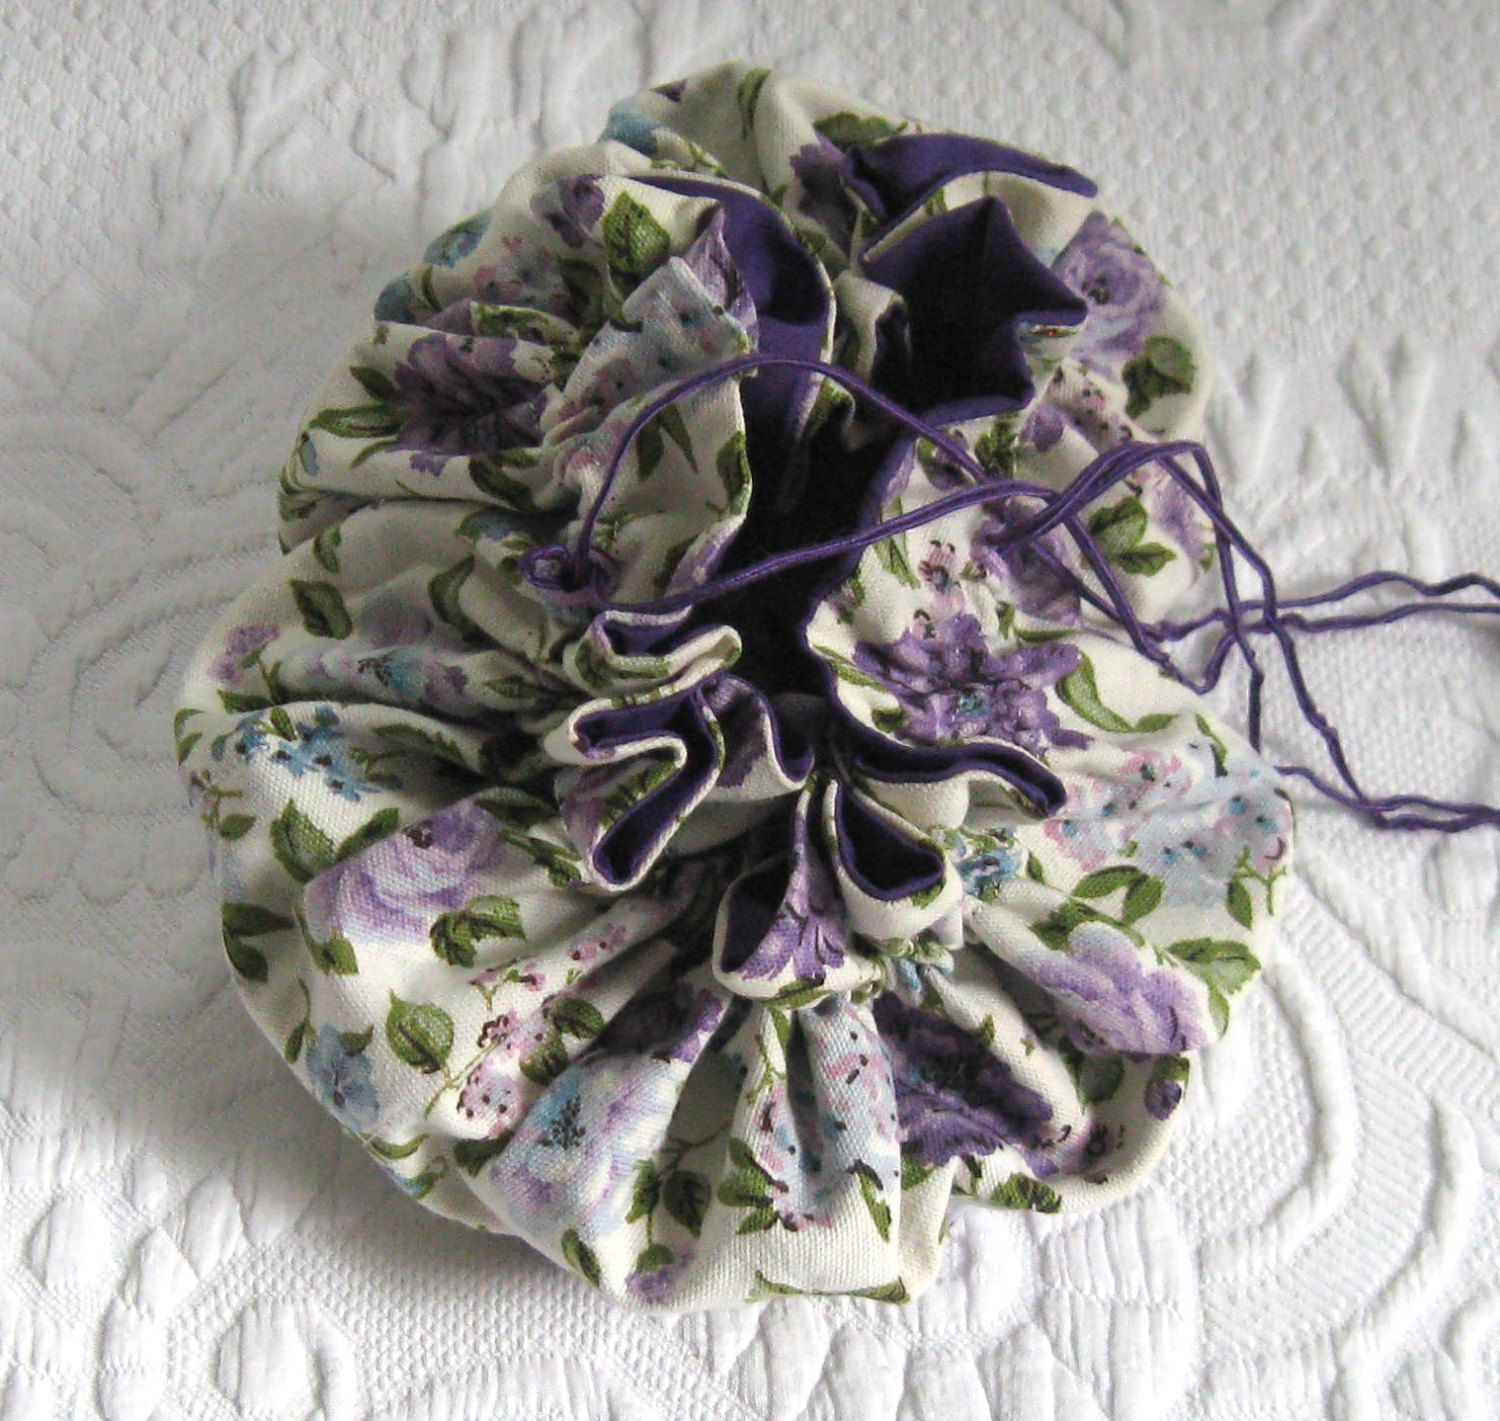 purple rose pouch . jewelry pouch .  travel pouch . jewelry organizer . sewing pouch . storage pouch . purple rose handbag by vintagous on Etsy